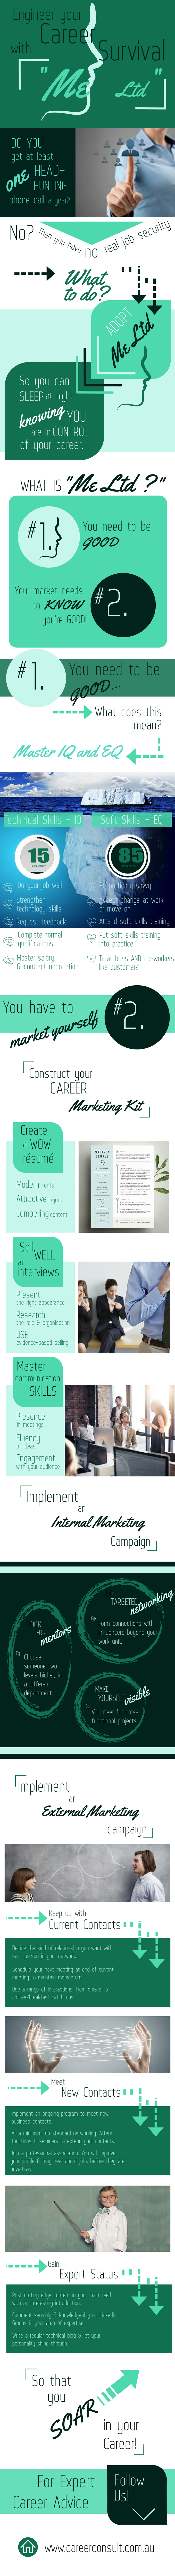 An infographic to help individuals put a career self-marketing plan in place. By Catherine Cunningham of the Career Consultancy.